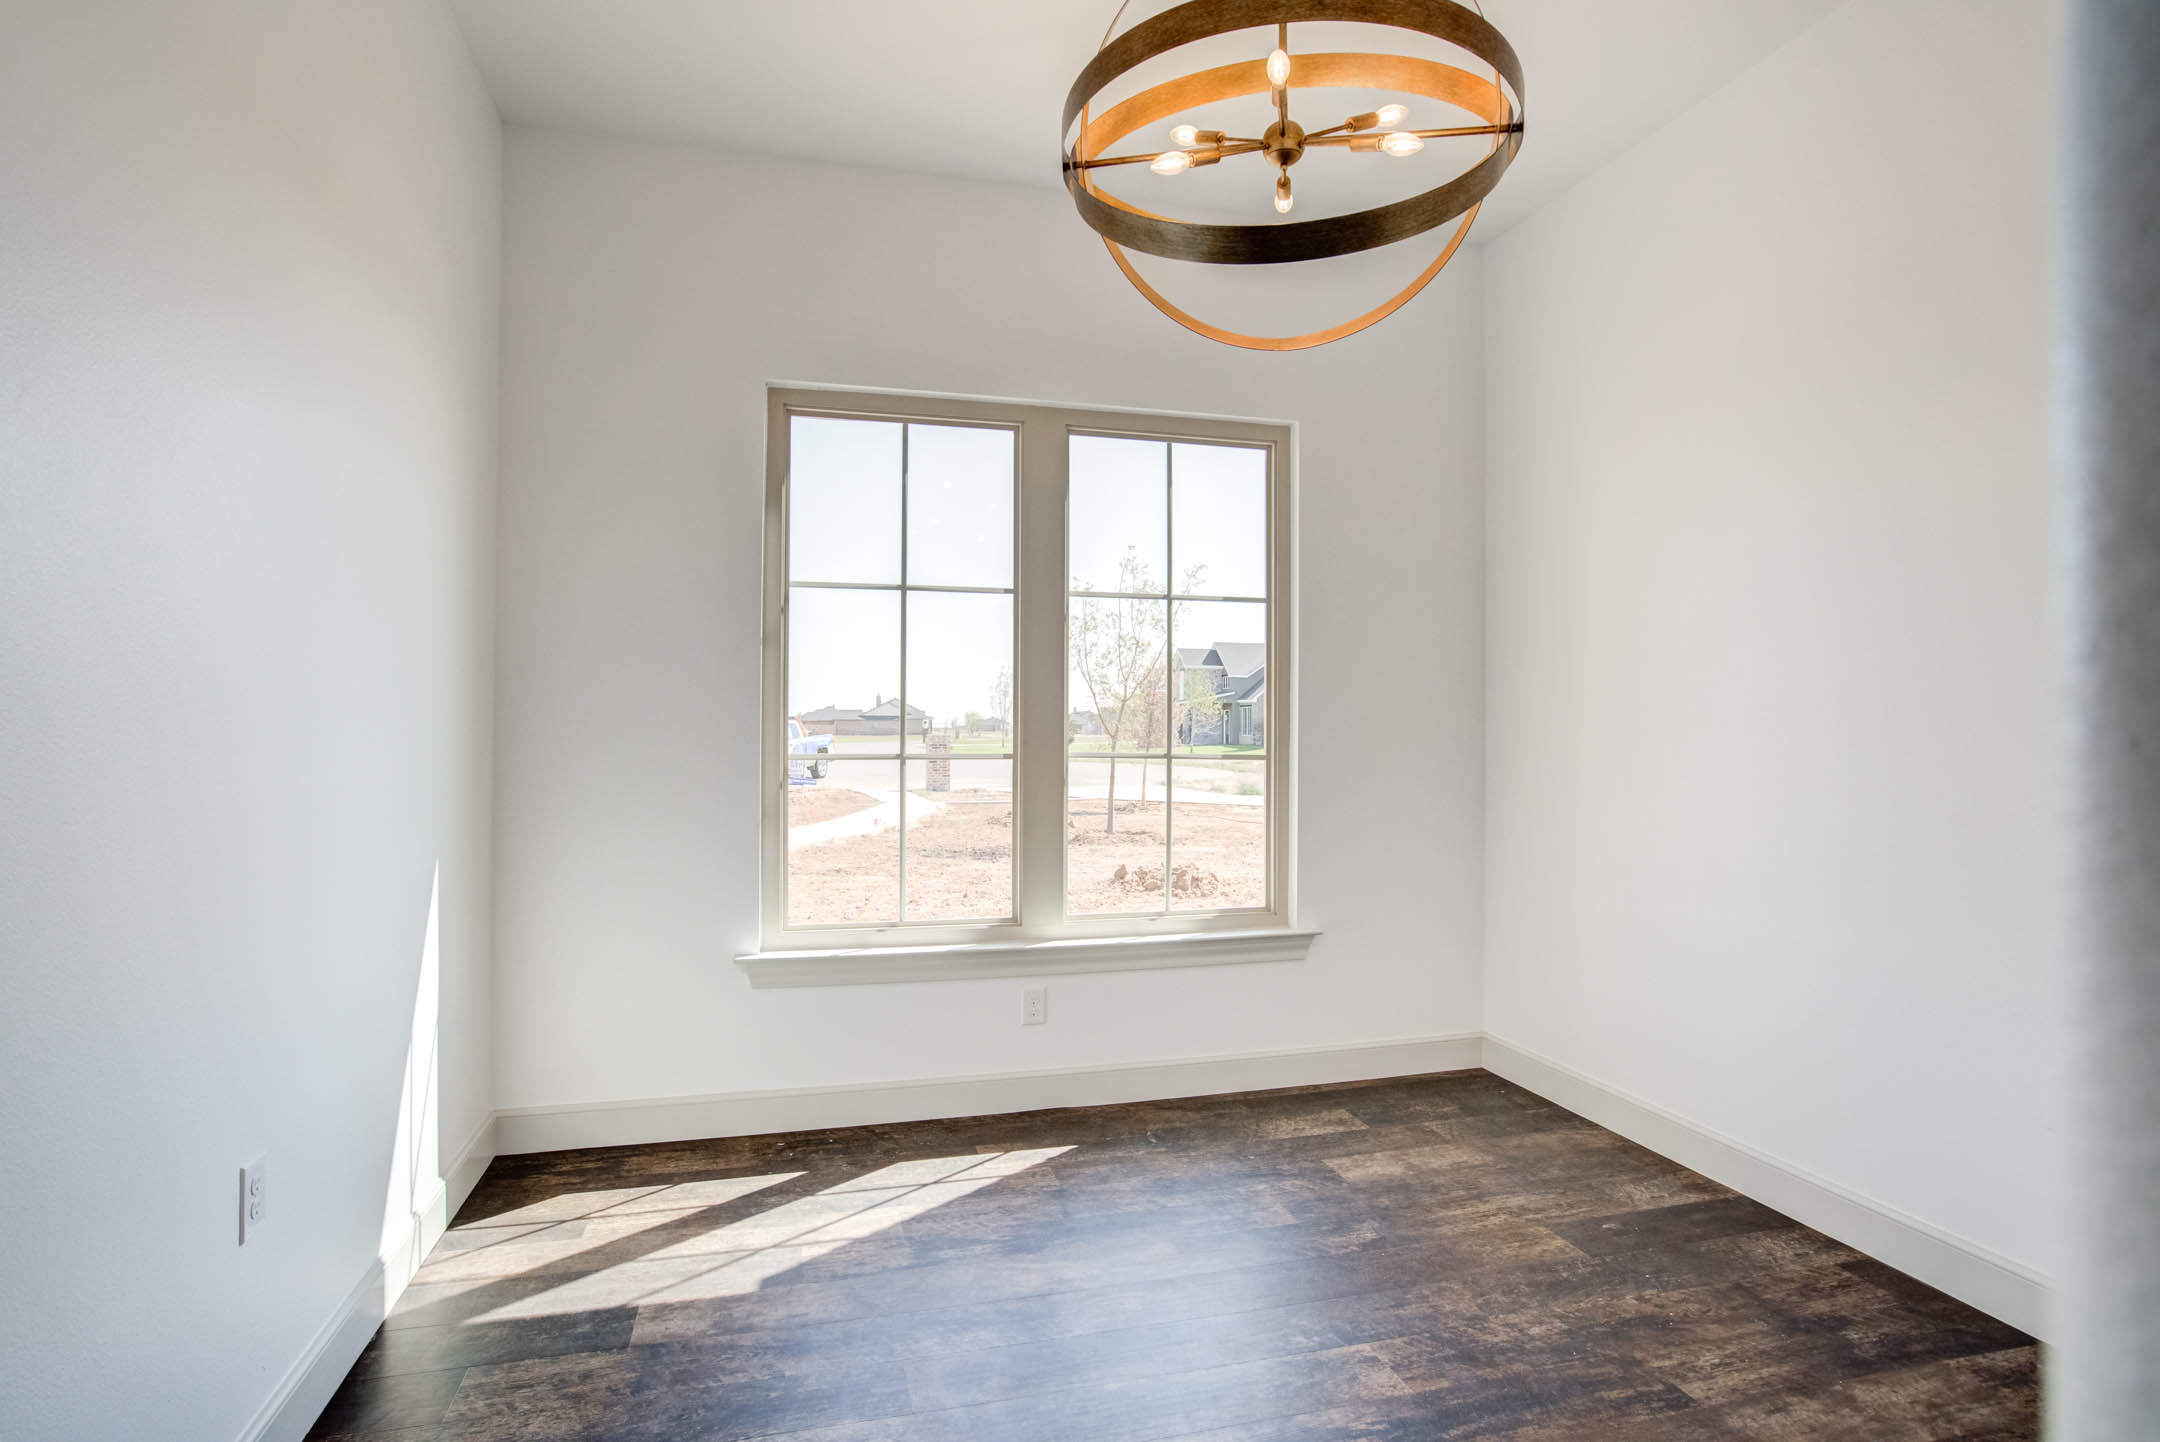 Dining room in new home for sale near Lubbock.